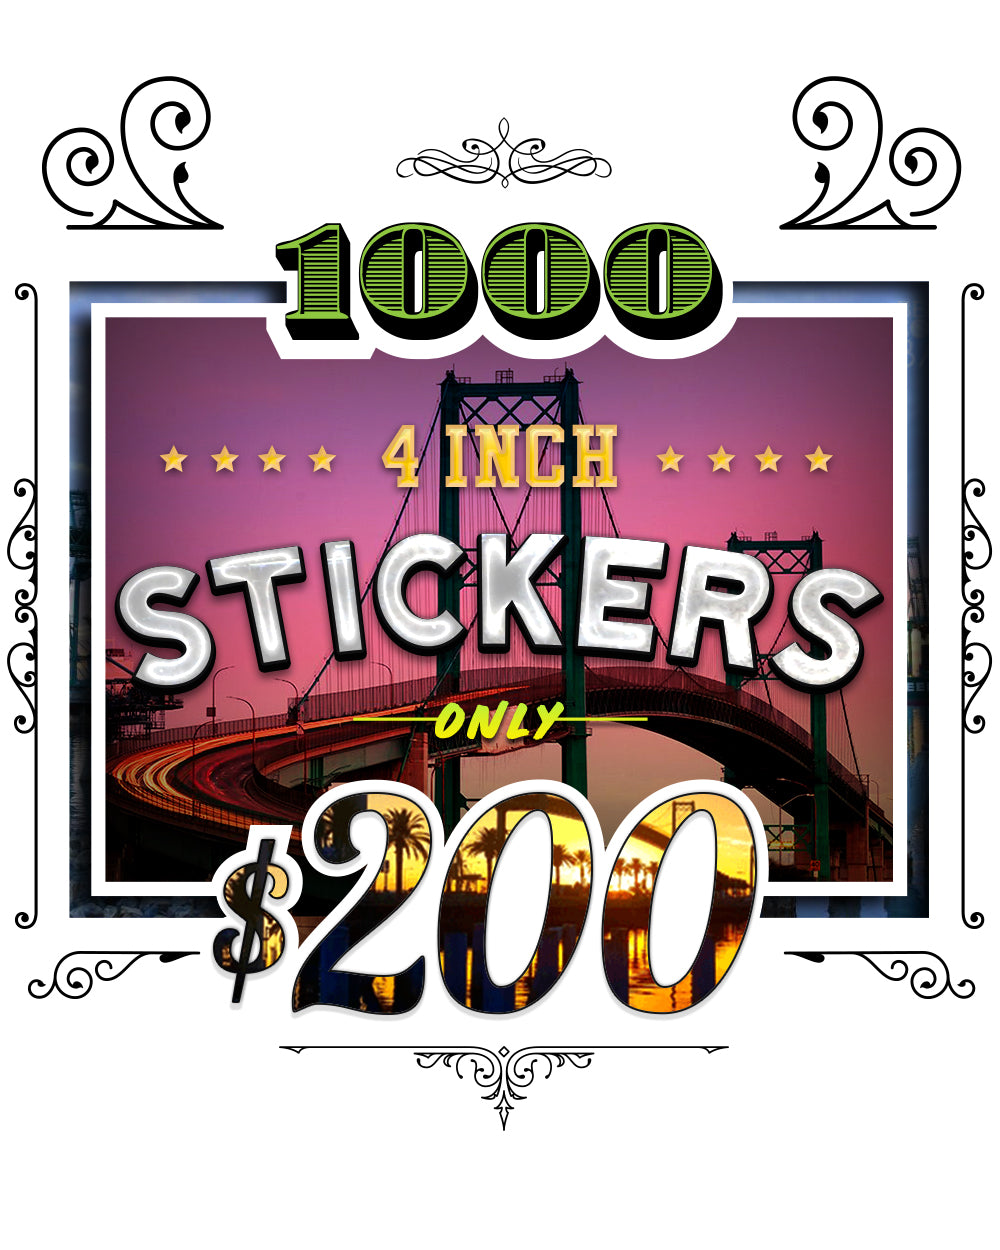 BLACK FRIDAY 1000 Stickers 4inch